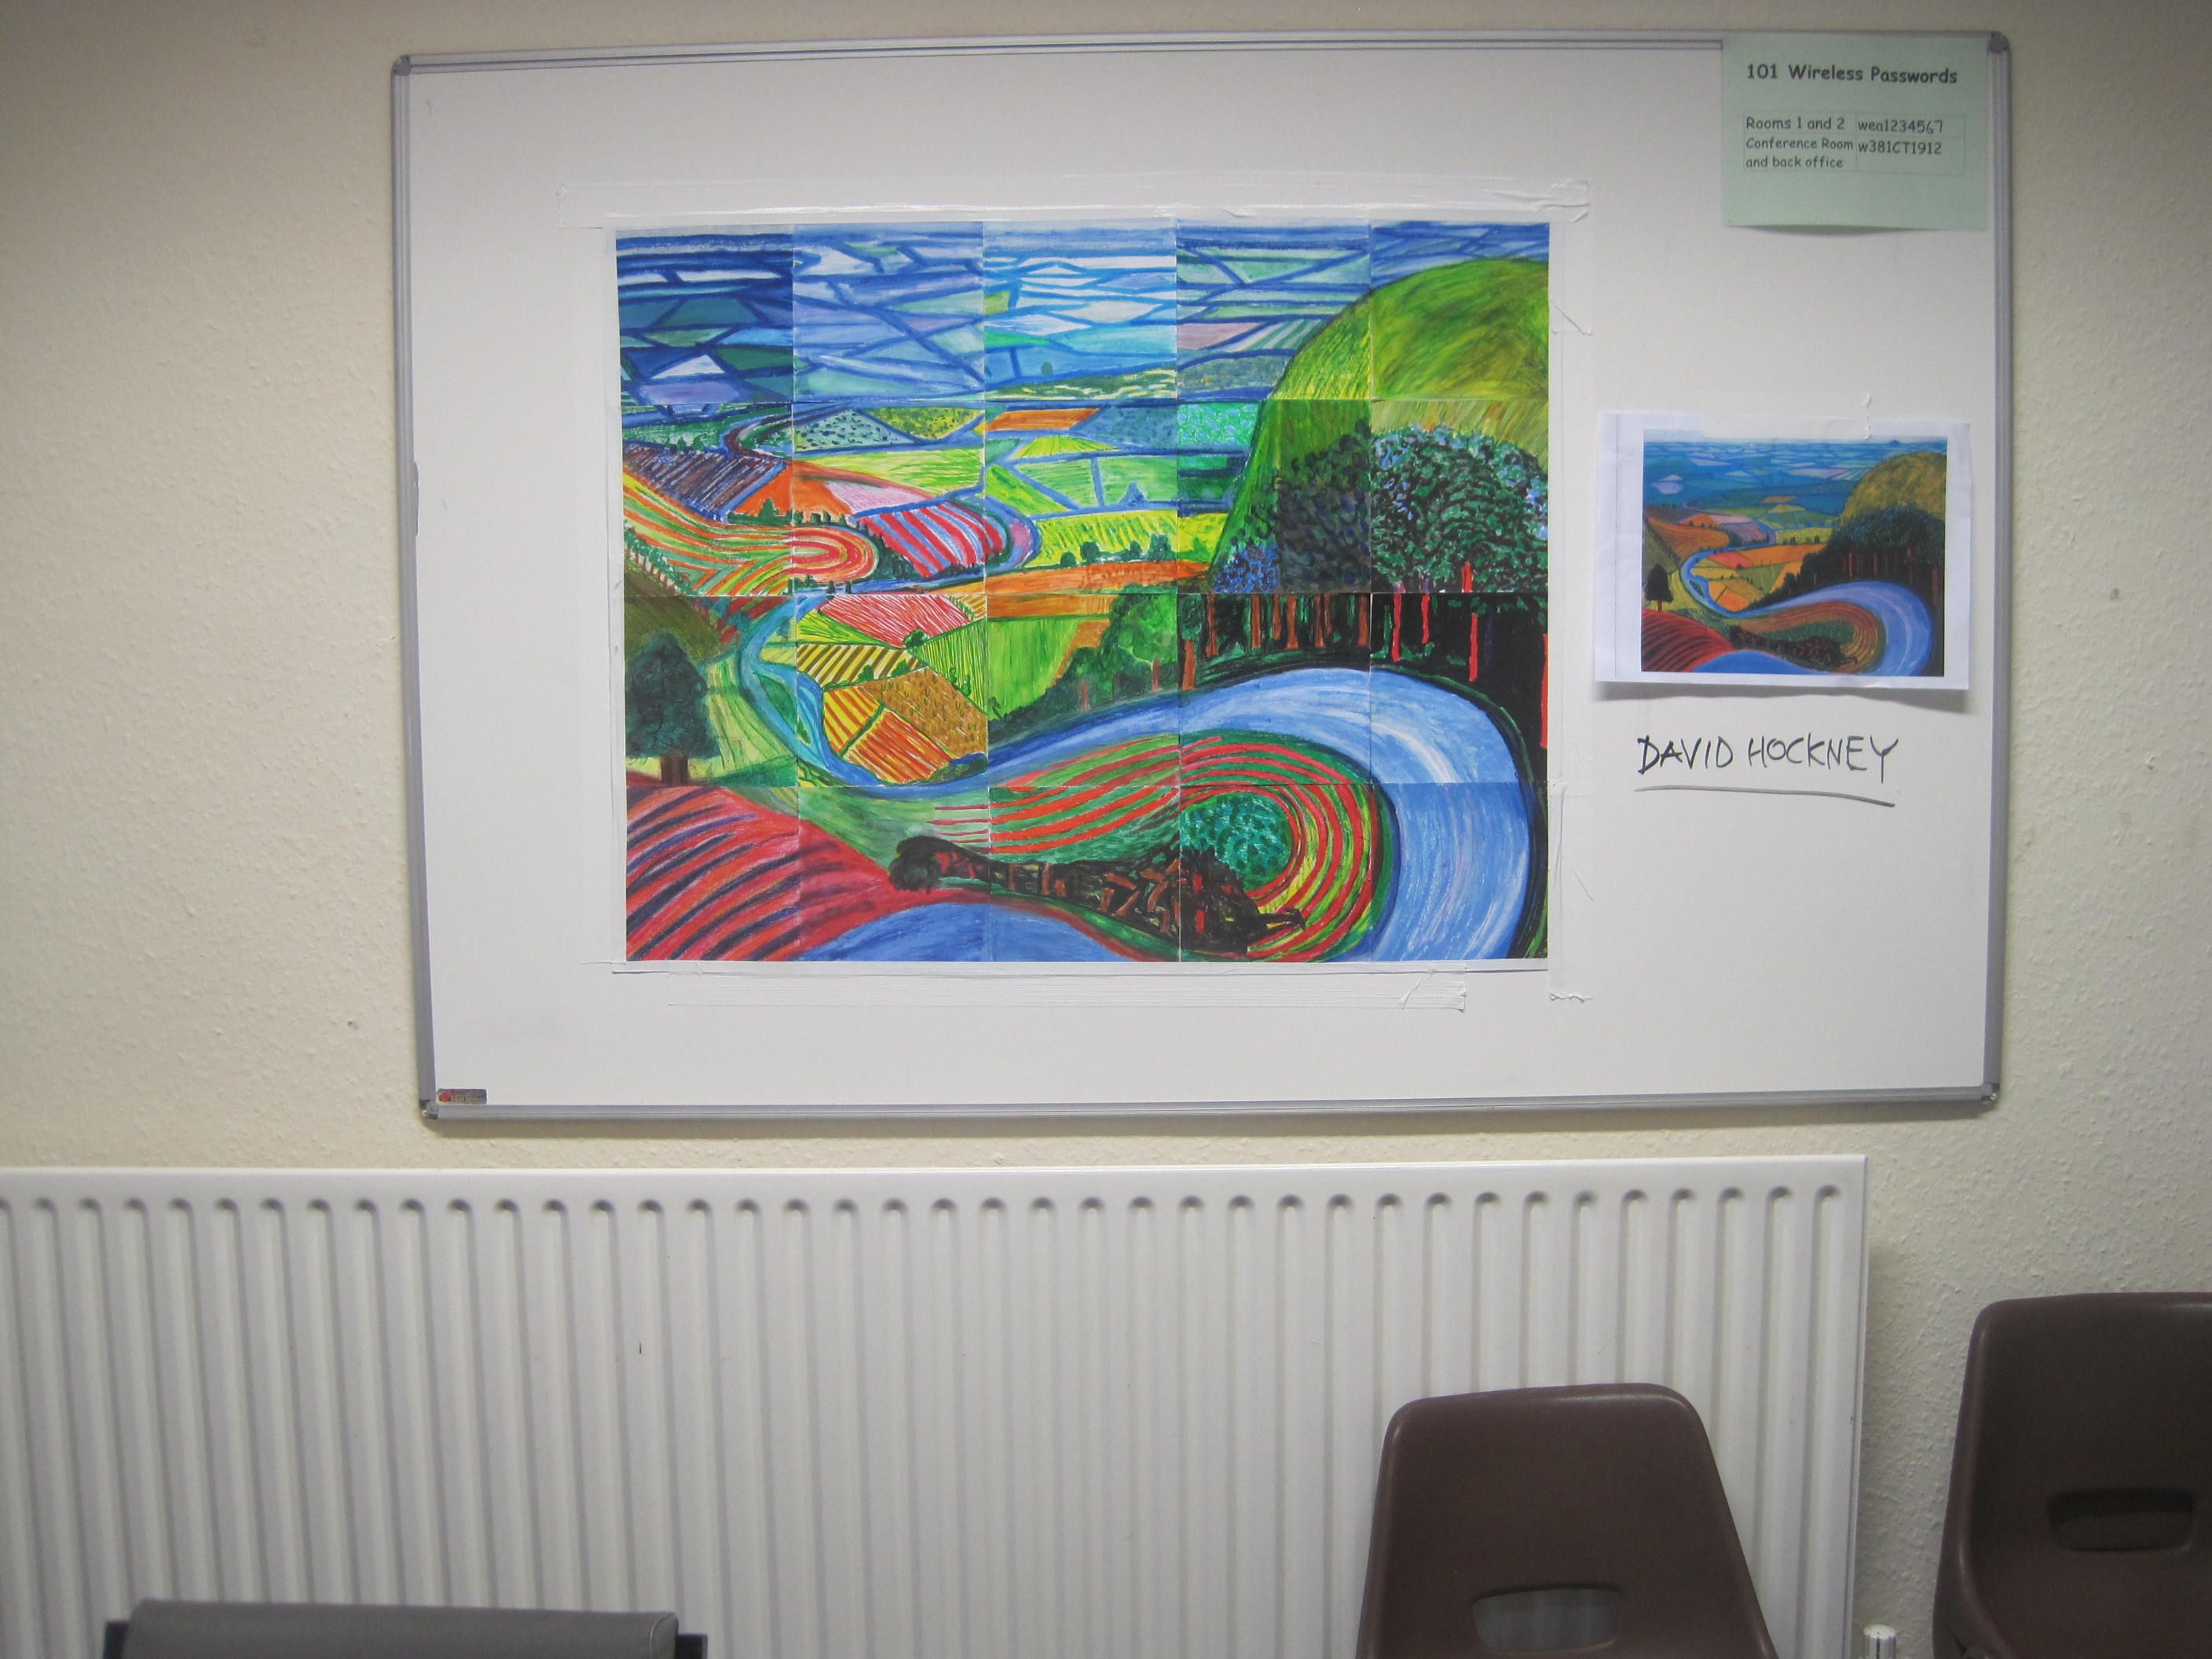 Collaborative David Hockney pic using pastels. WEA art group